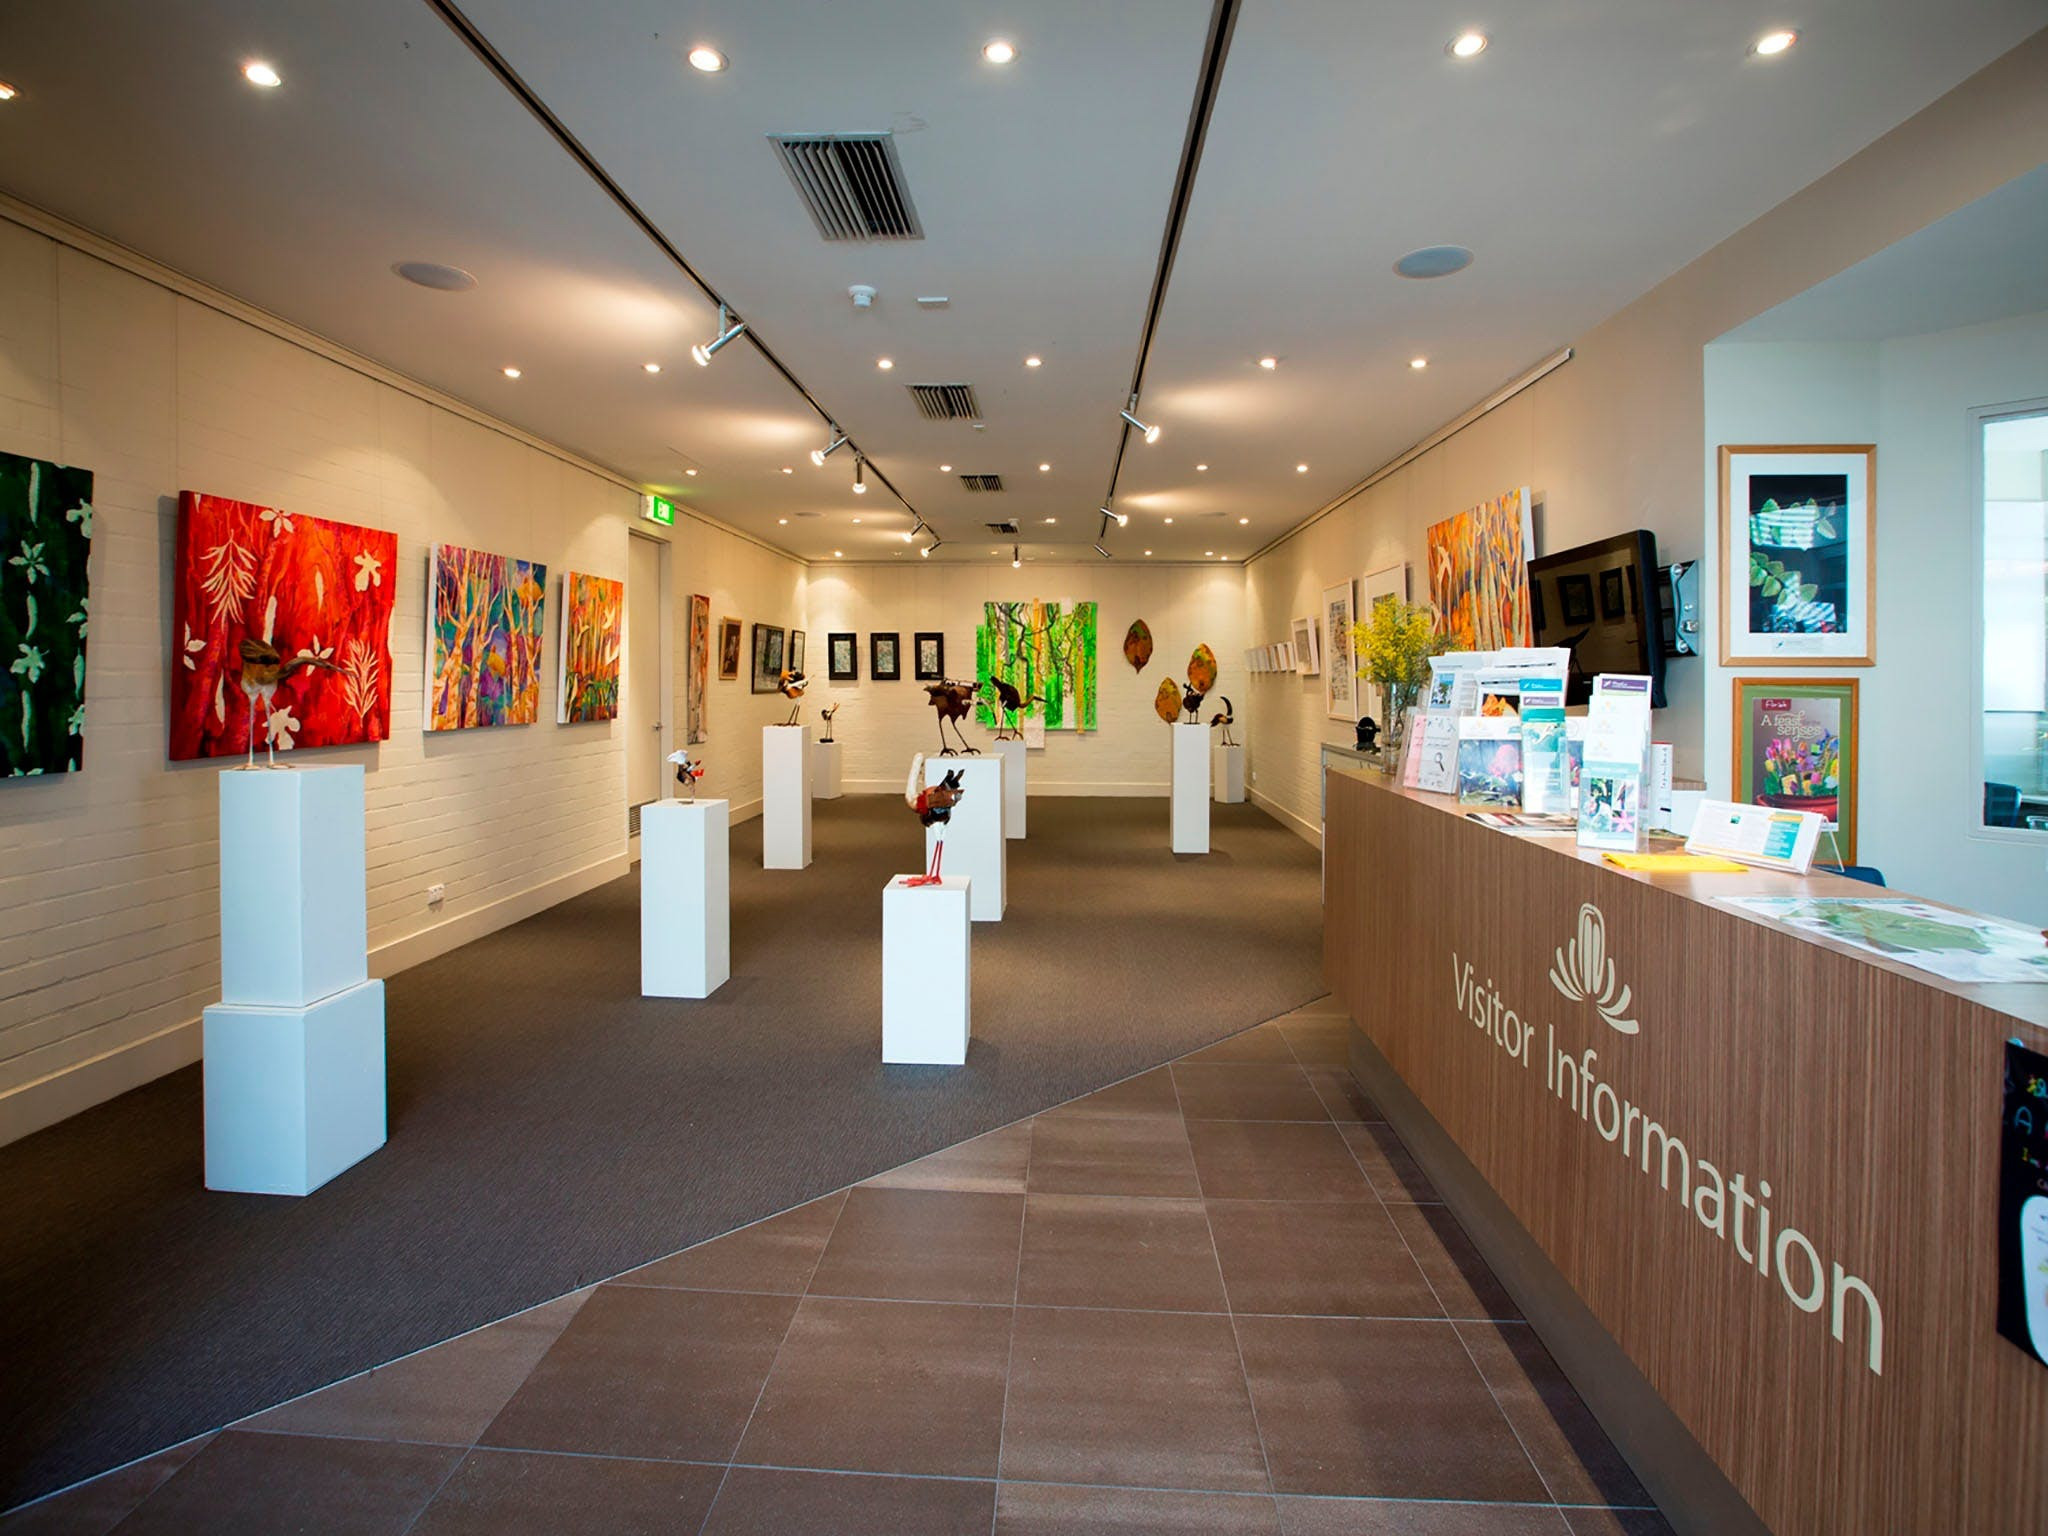 Australian National Botanic Gardens Visitor Centre Gallery - Accommodation Bookings